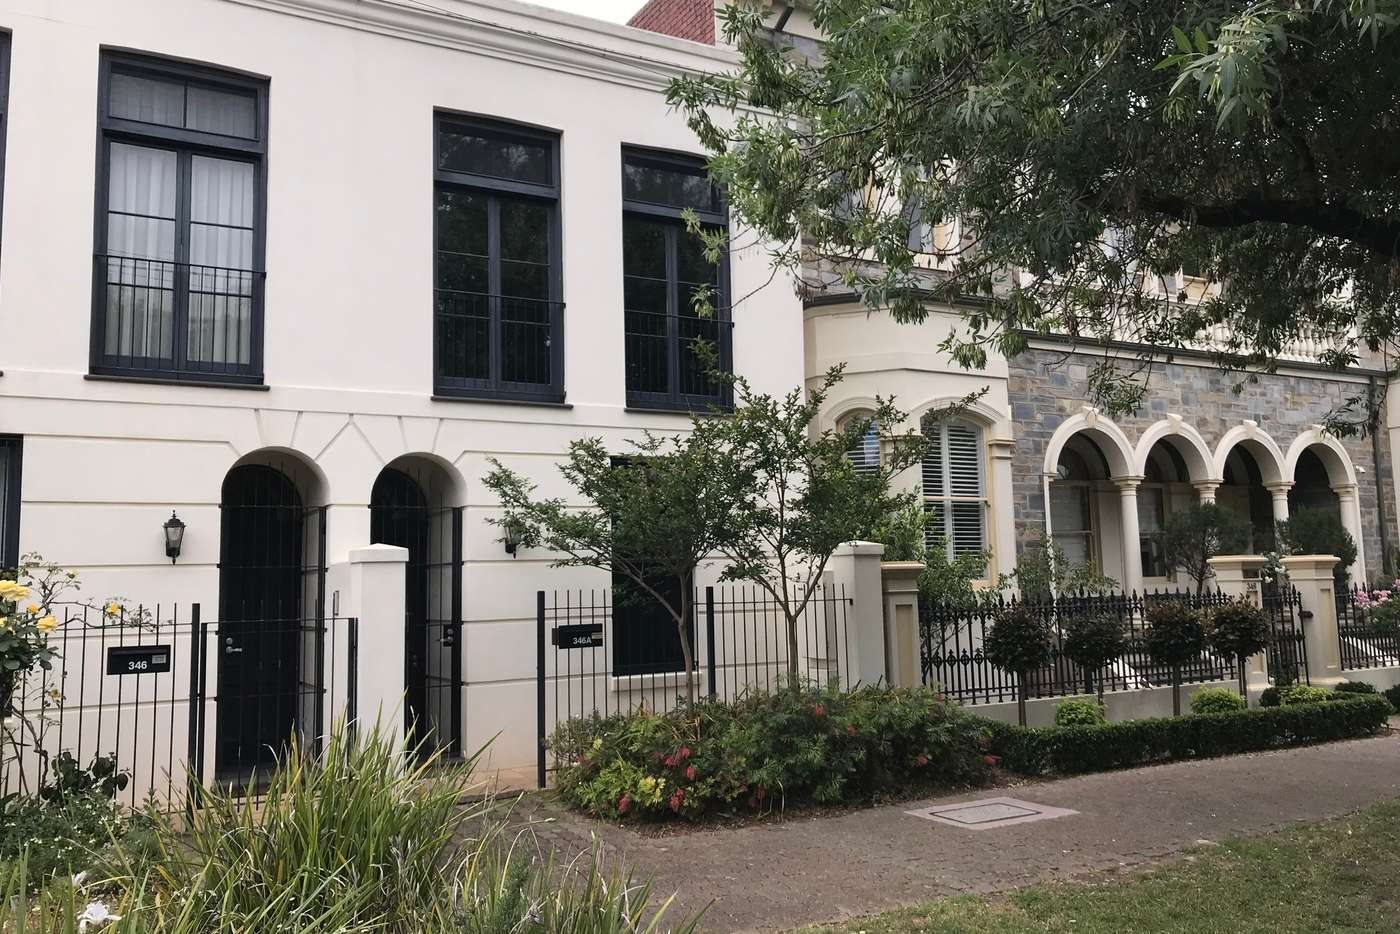 Main view of Homely townhouse listing, 346A Angas Street, Adelaide SA 5000